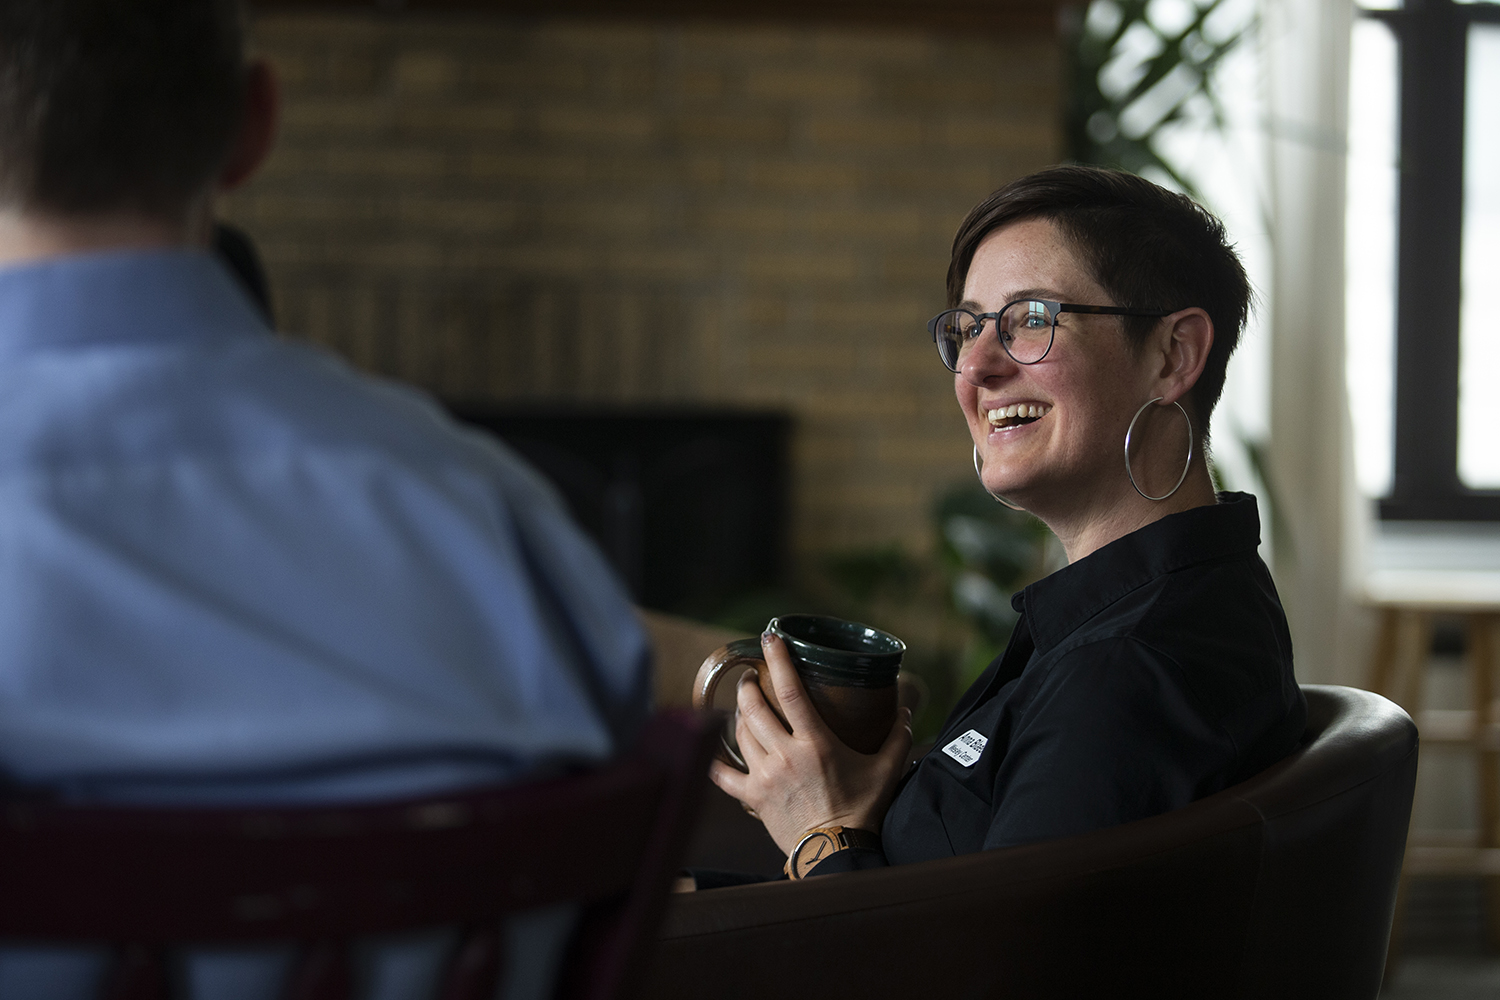 Rev. Anna Blaedel listens during a Bible study at the Wesley Center on May 1, 2019. Openly queer, Blaedel has faced formal complaints by the United Methodist Church.